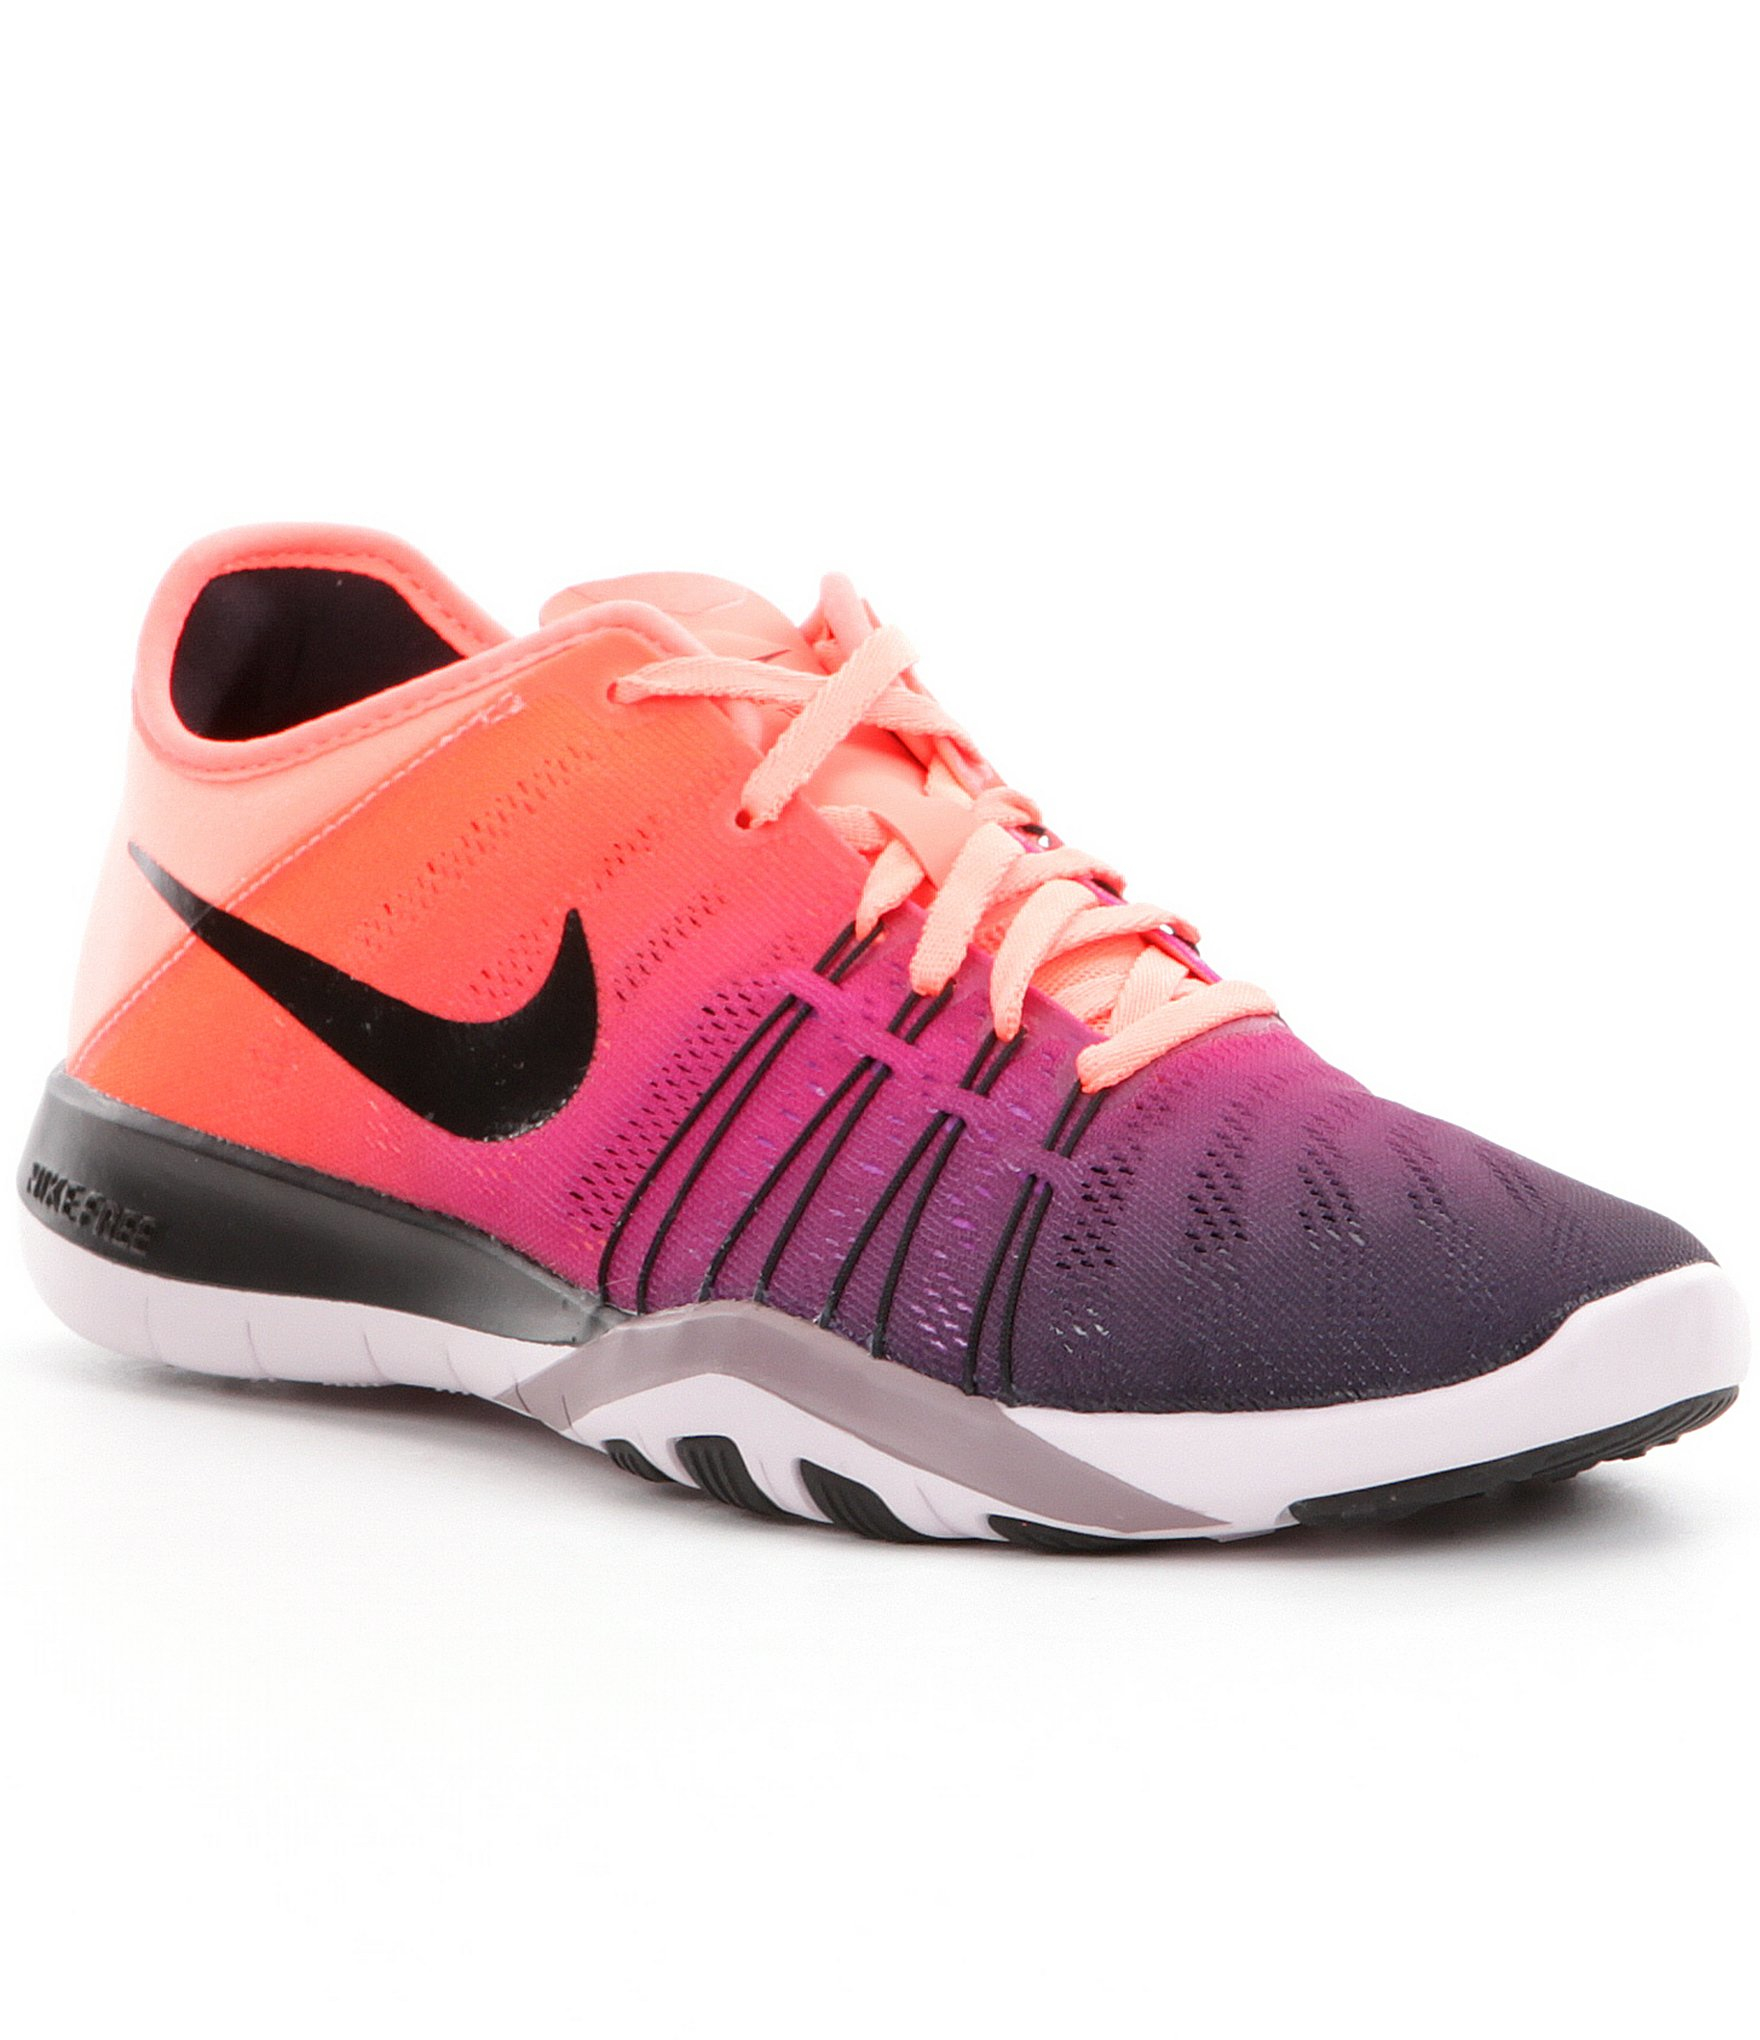 740038a72c7e Lyst - Nike Women´s Free Tr 6 Spectrum Training Shoes in Pink